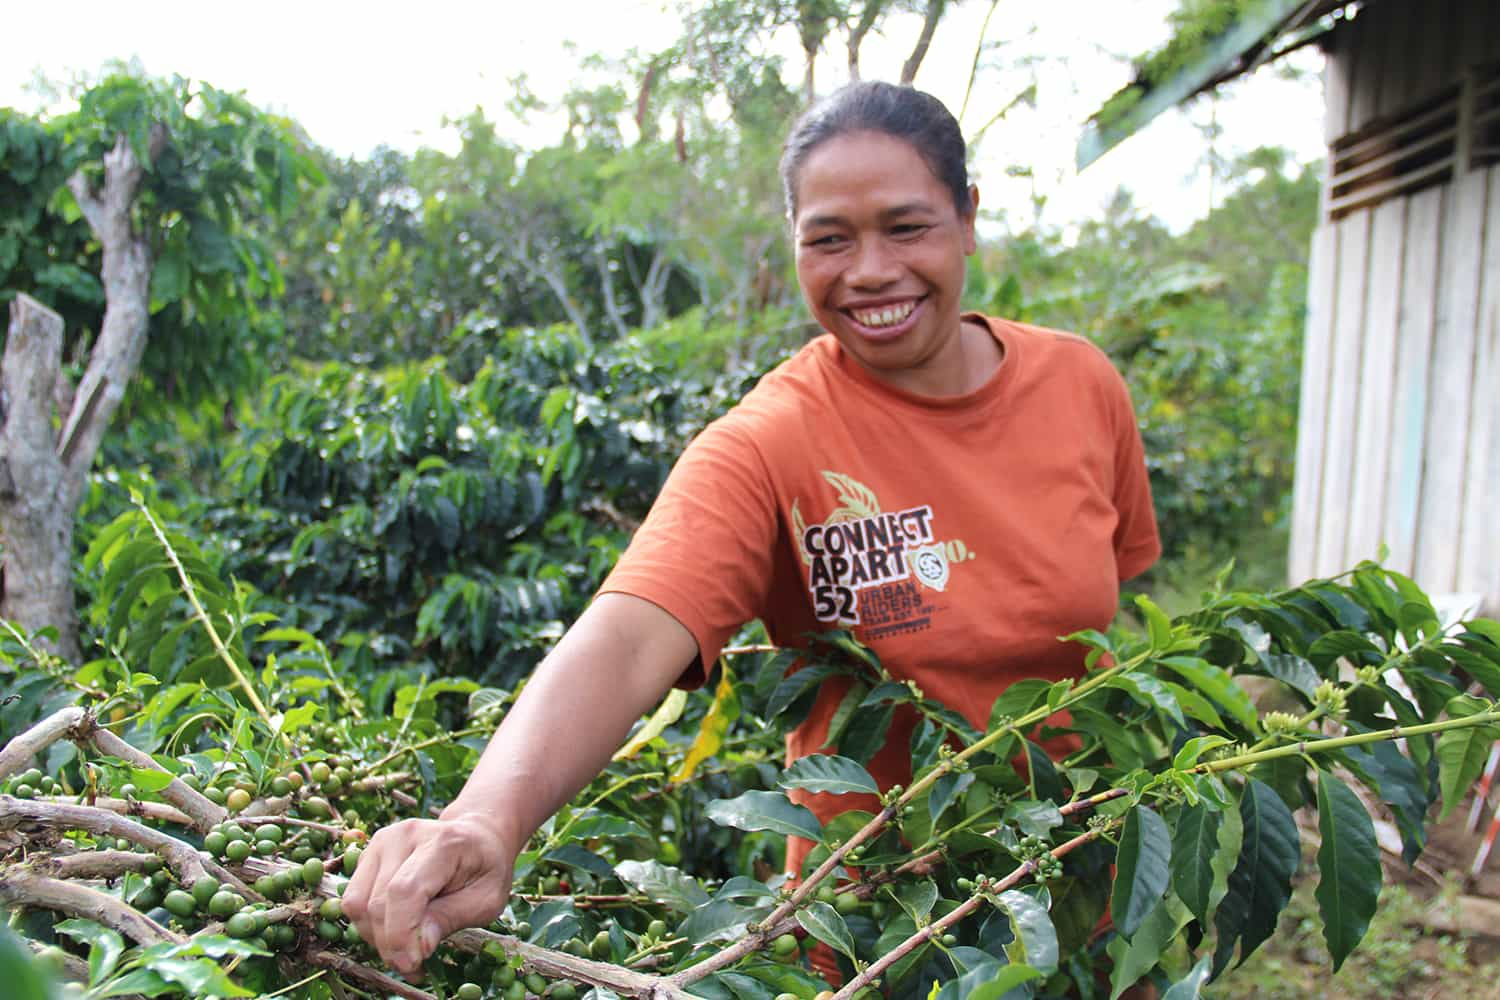 Lutheran World Woman with Coffee IV - Keeping Up in a Competitive Global Market  Means Better Life for Coffee Farmers in Indonesia